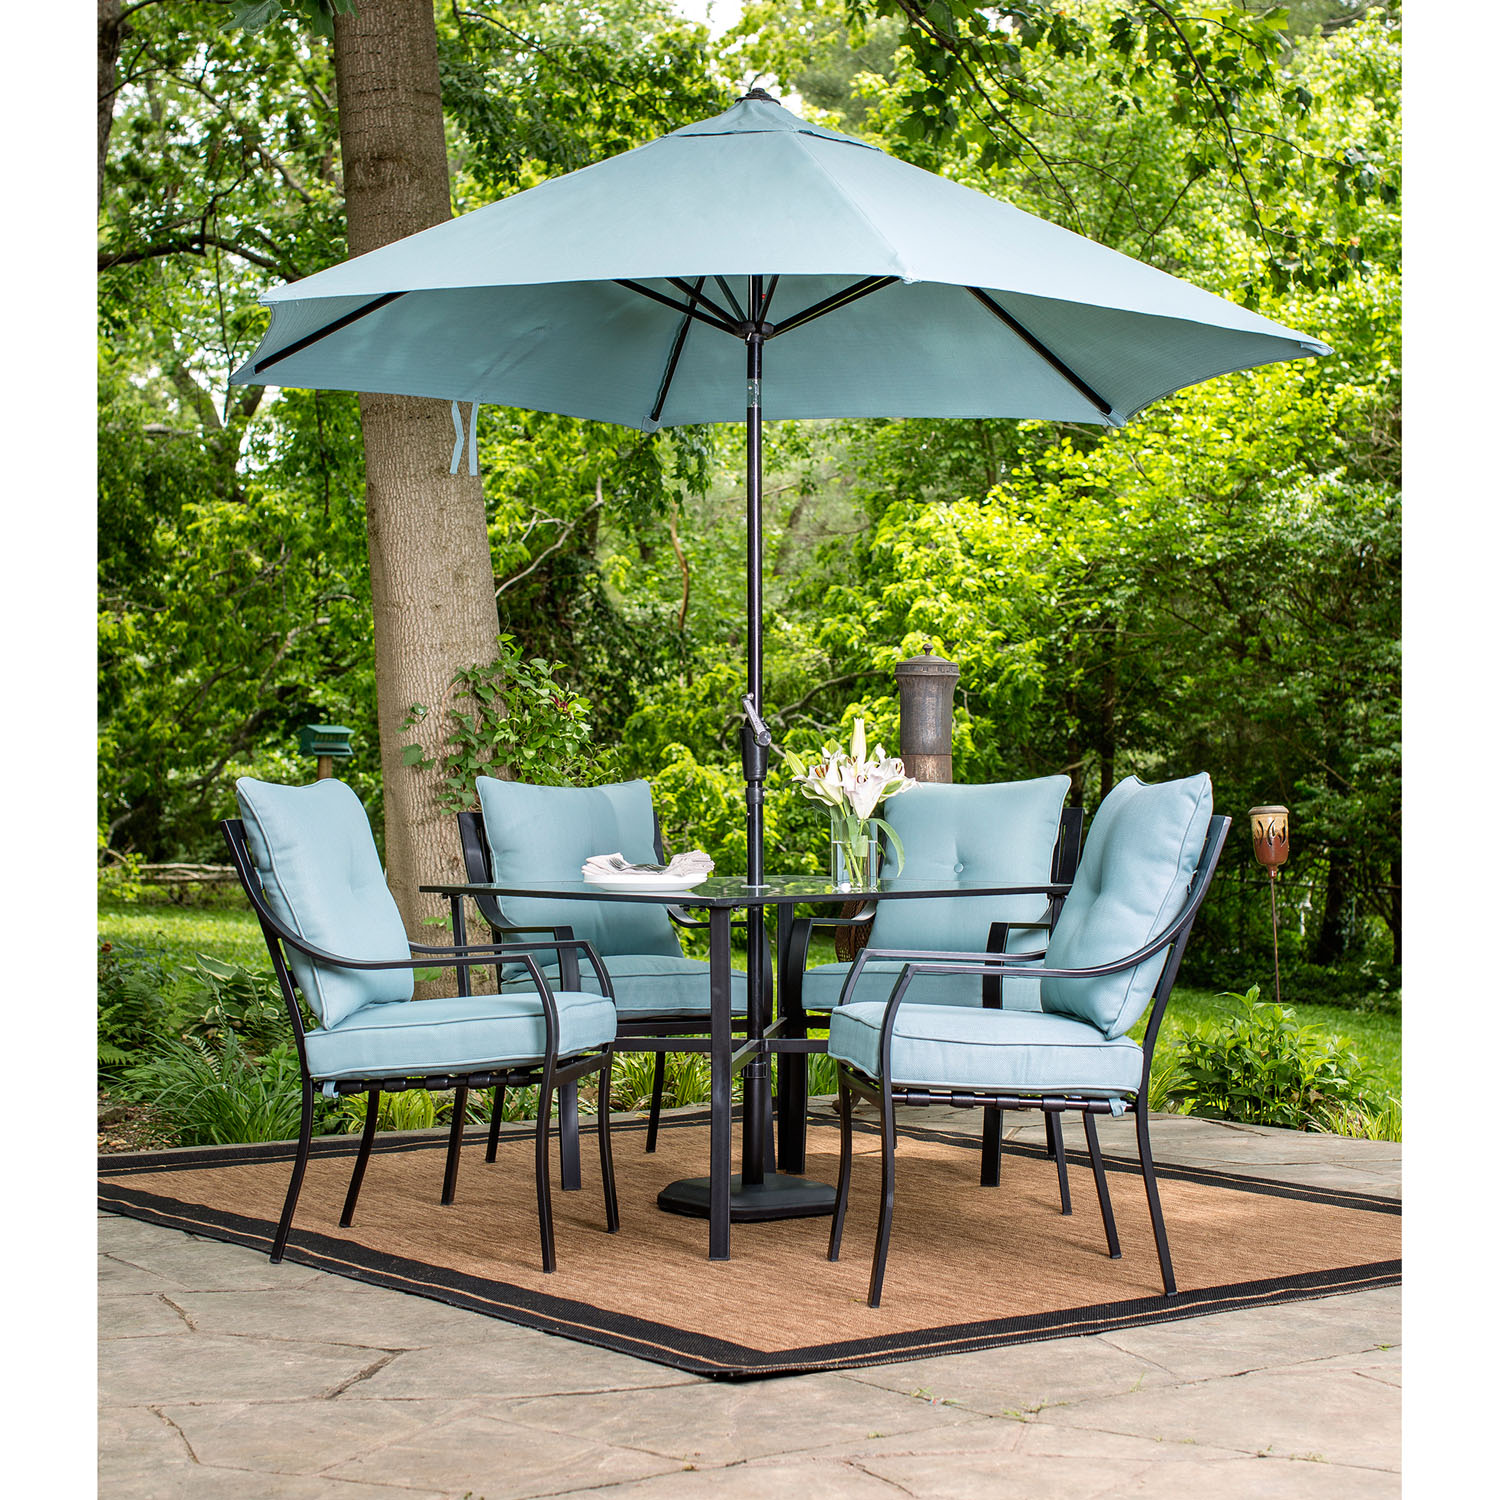 Hanover Lavallette 5 Piece Outdoor Dining Set And Table Umbrella With Stand Walmart Com Walmart Com